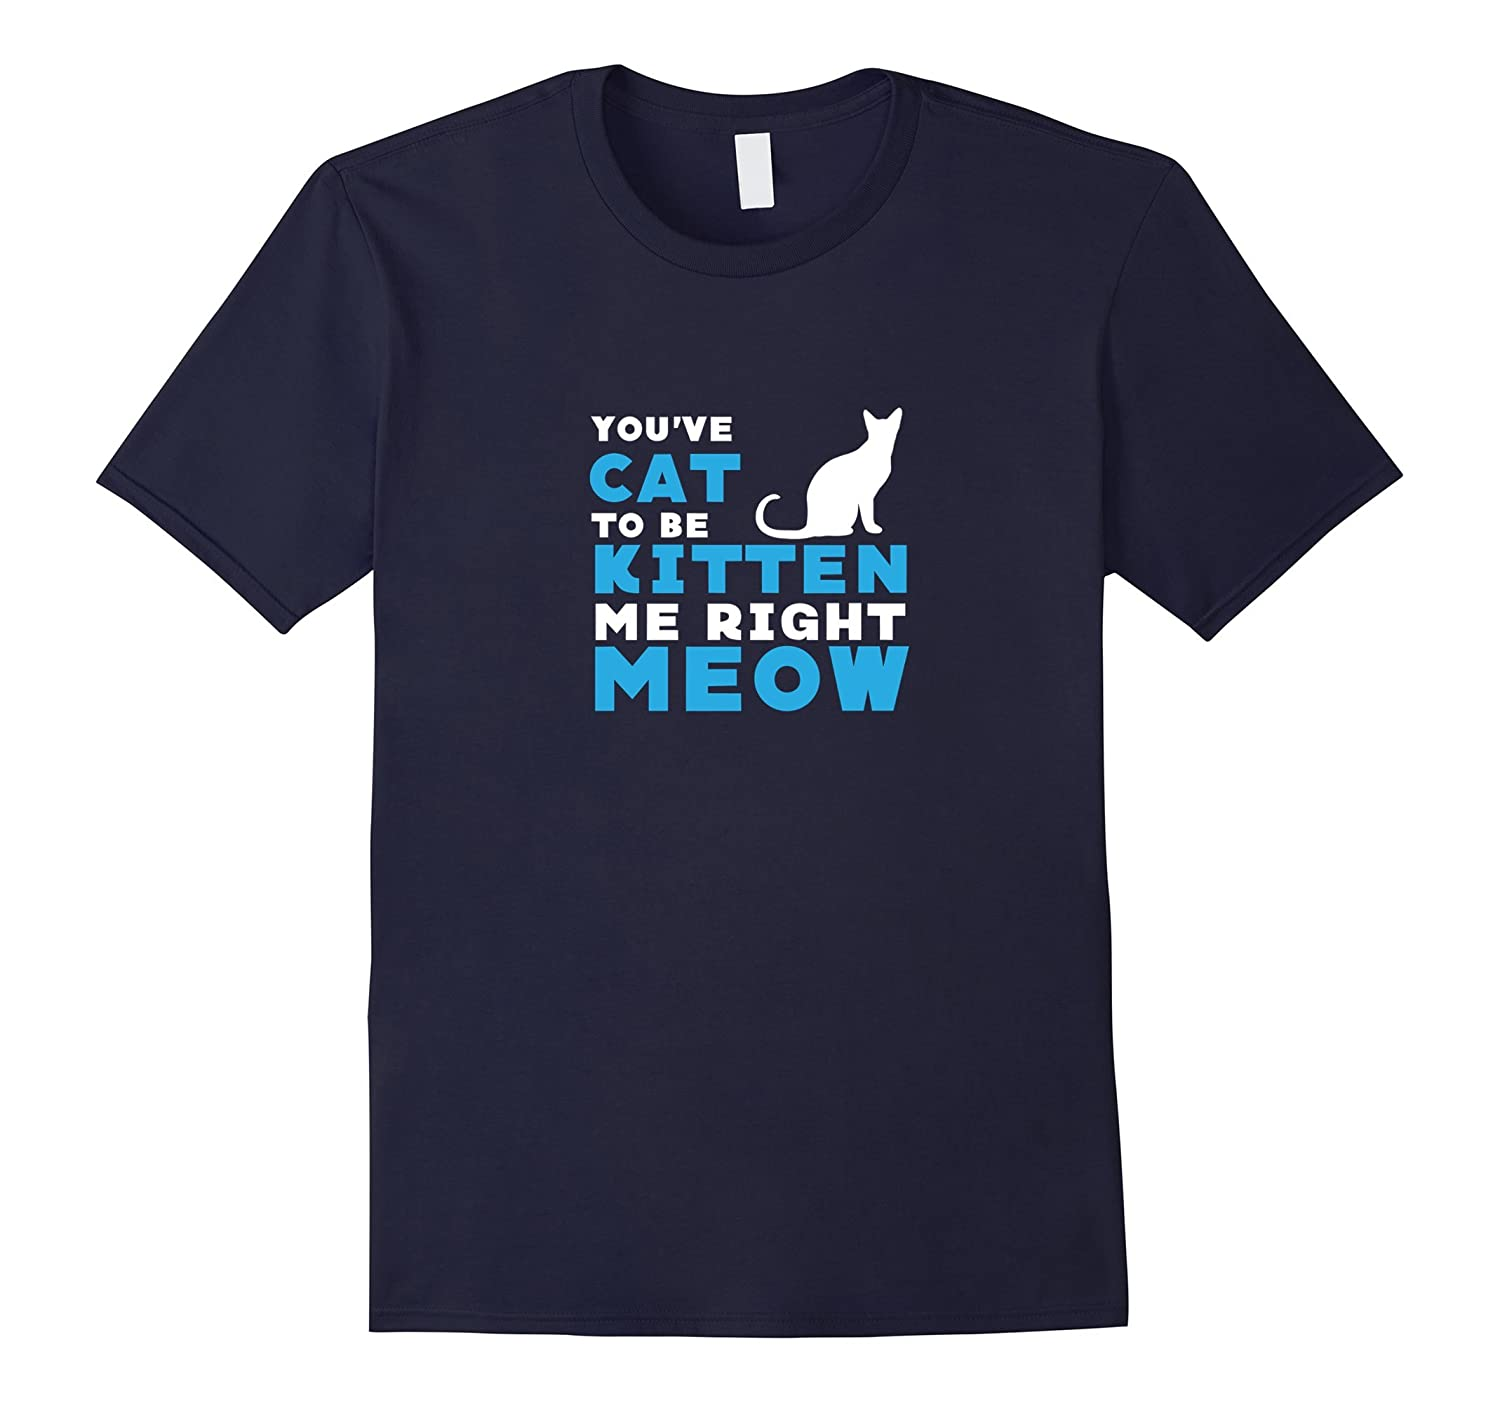 Youve Cat To Be Kitten Me Right Meow Funny Saying T Shirt-TH